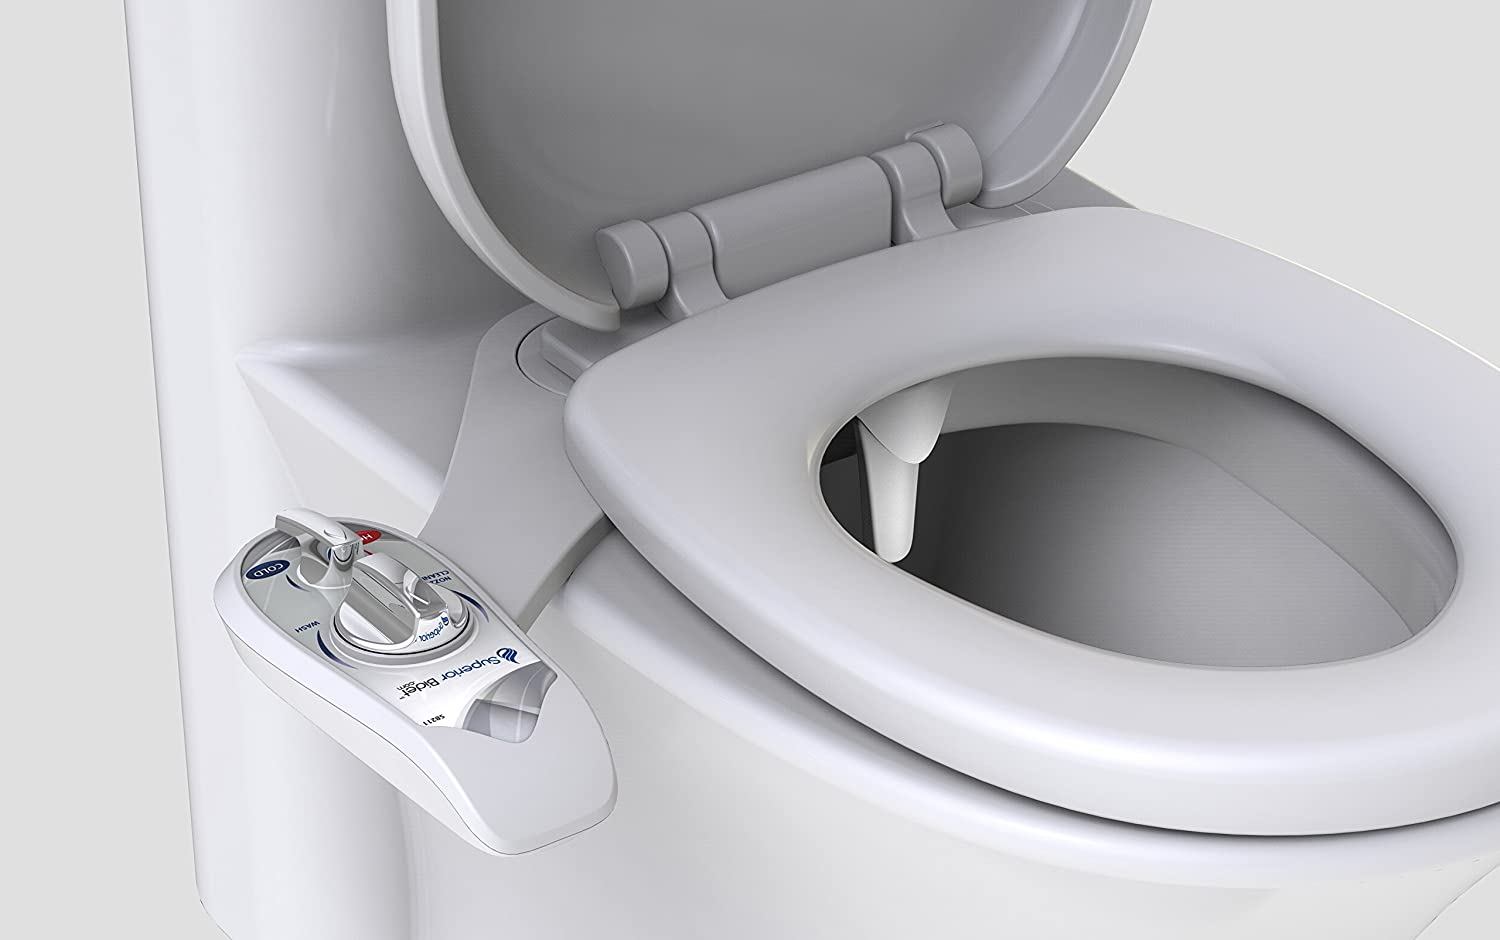 Dual Nozzle Design For Front and Rear Cleaning Superior Bidet All Around Warm Adjustable Nozzles Adapt To Any Body Type For Easy Cleaning Hot and Cold White Bidet Attachment